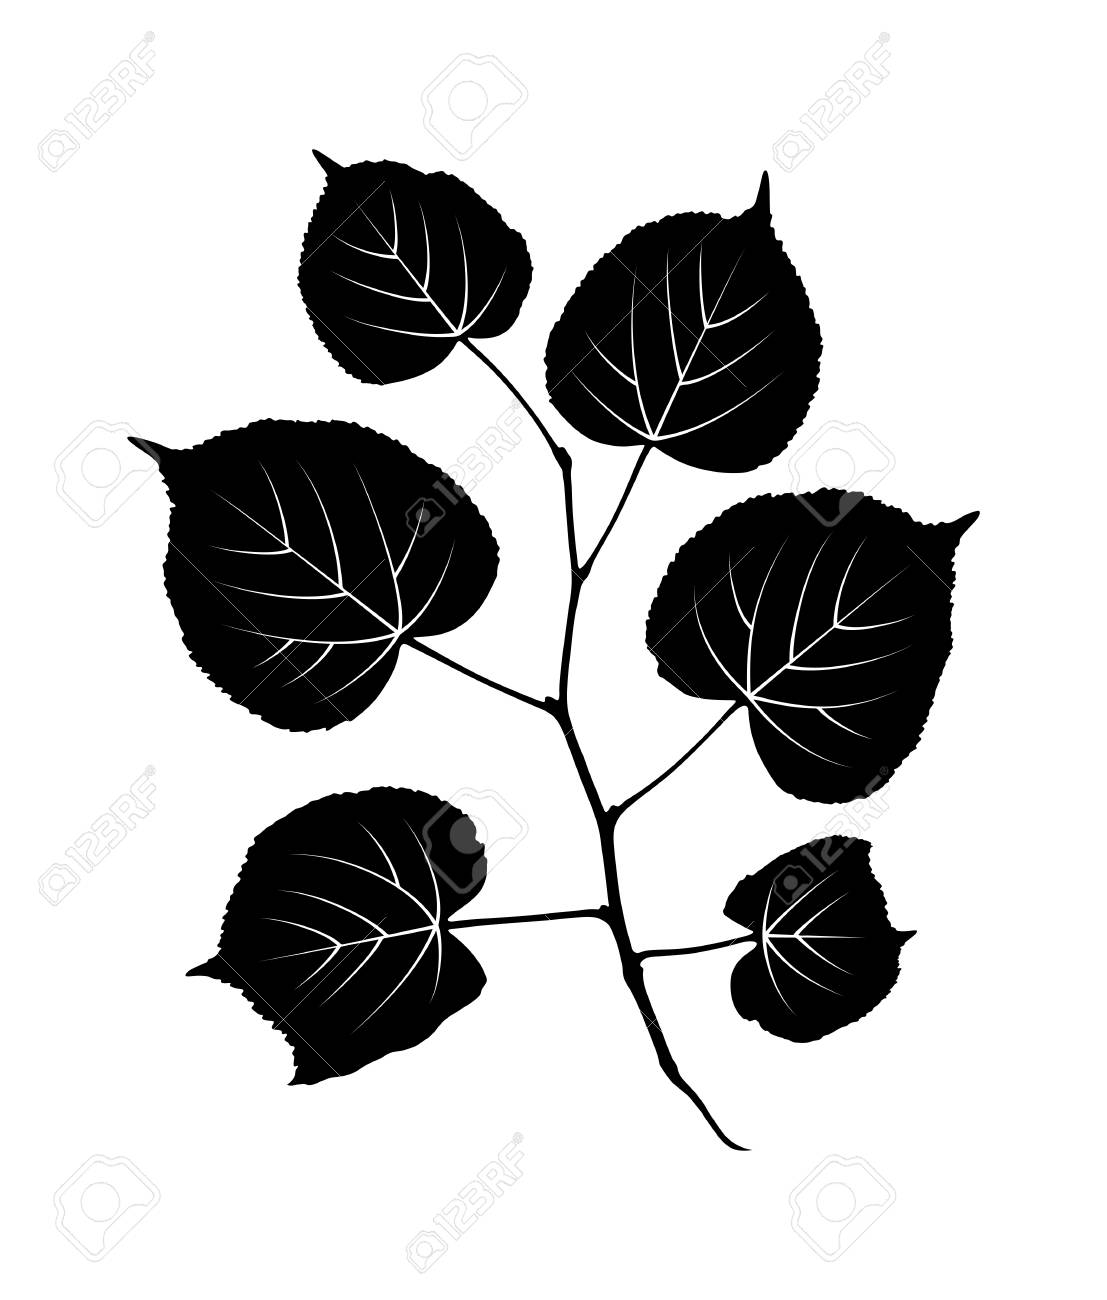 vector linden twig isolated on white background - 119130562